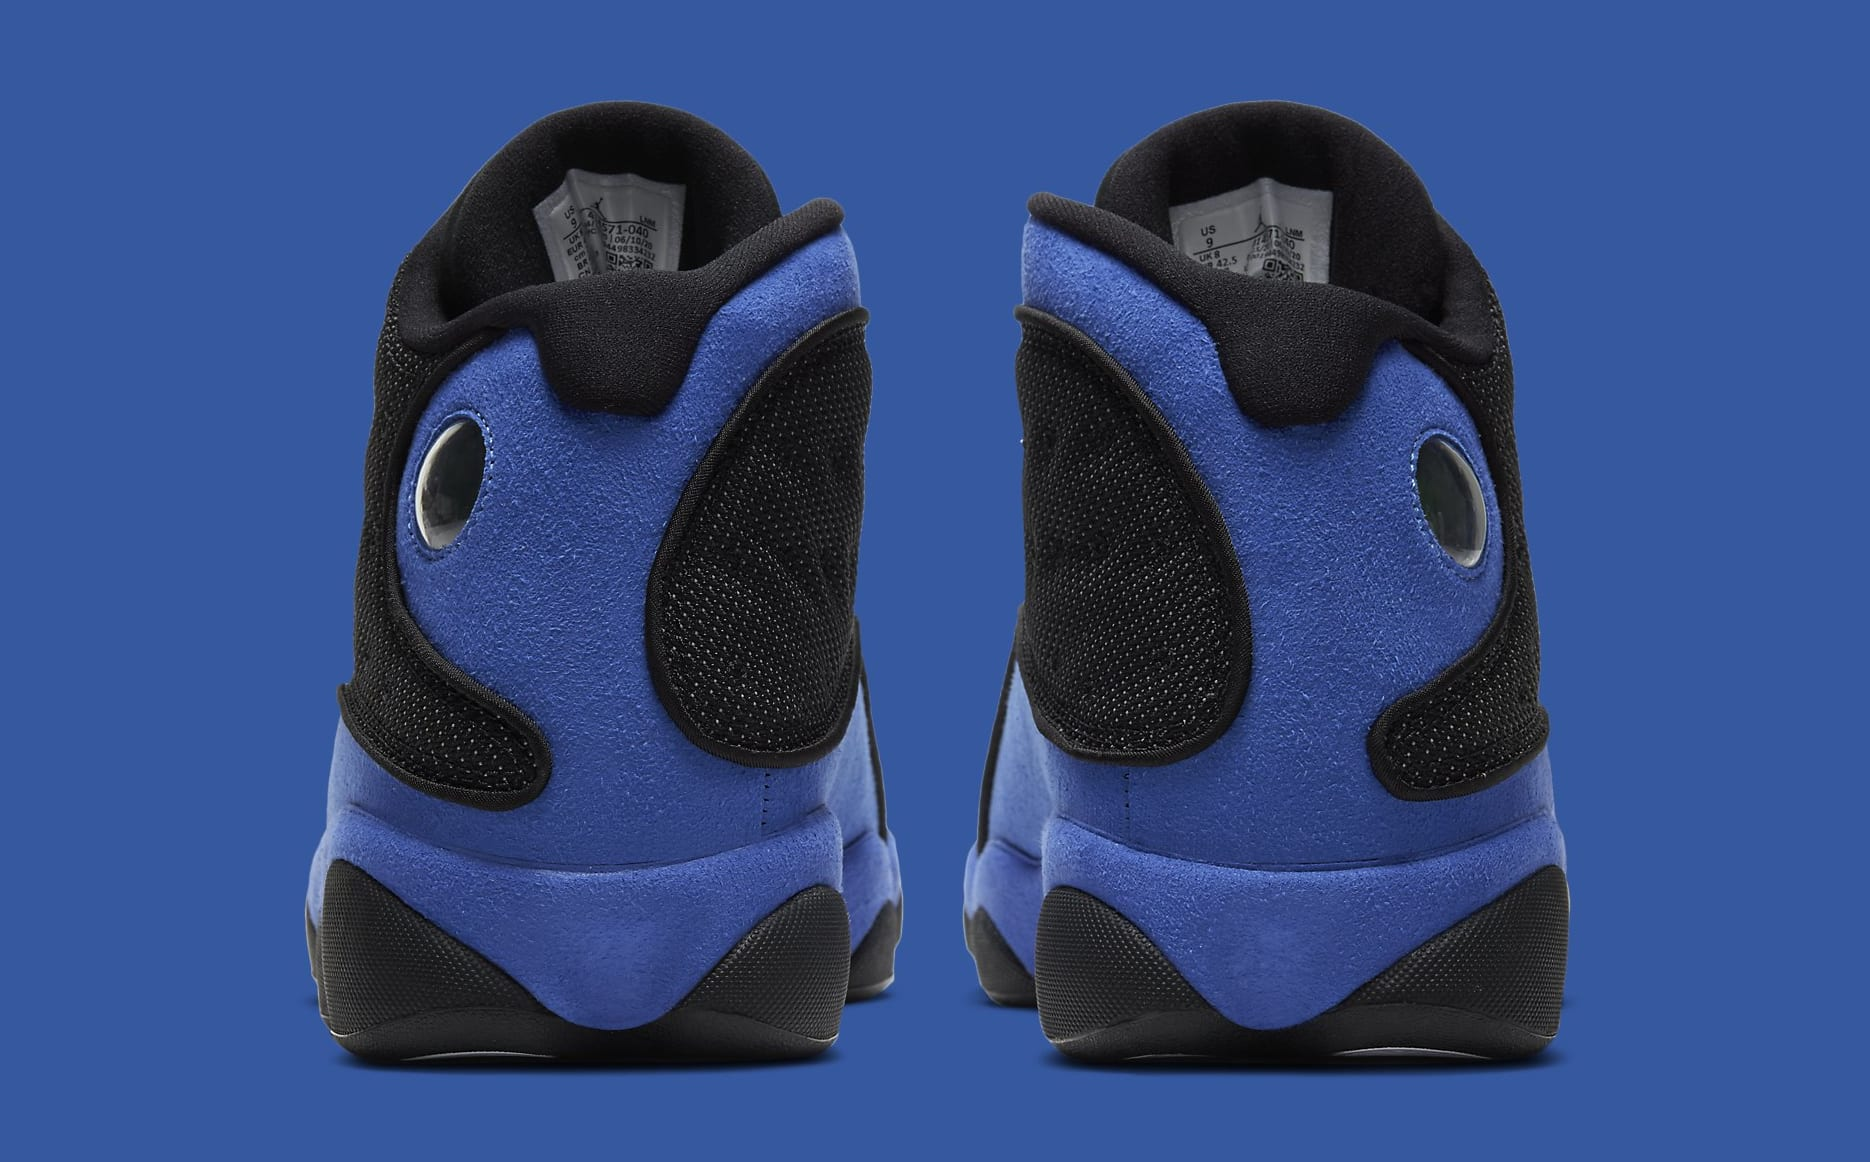 Air Jordan 13 Retro 'Hyper Royal' 414571-040 Heel